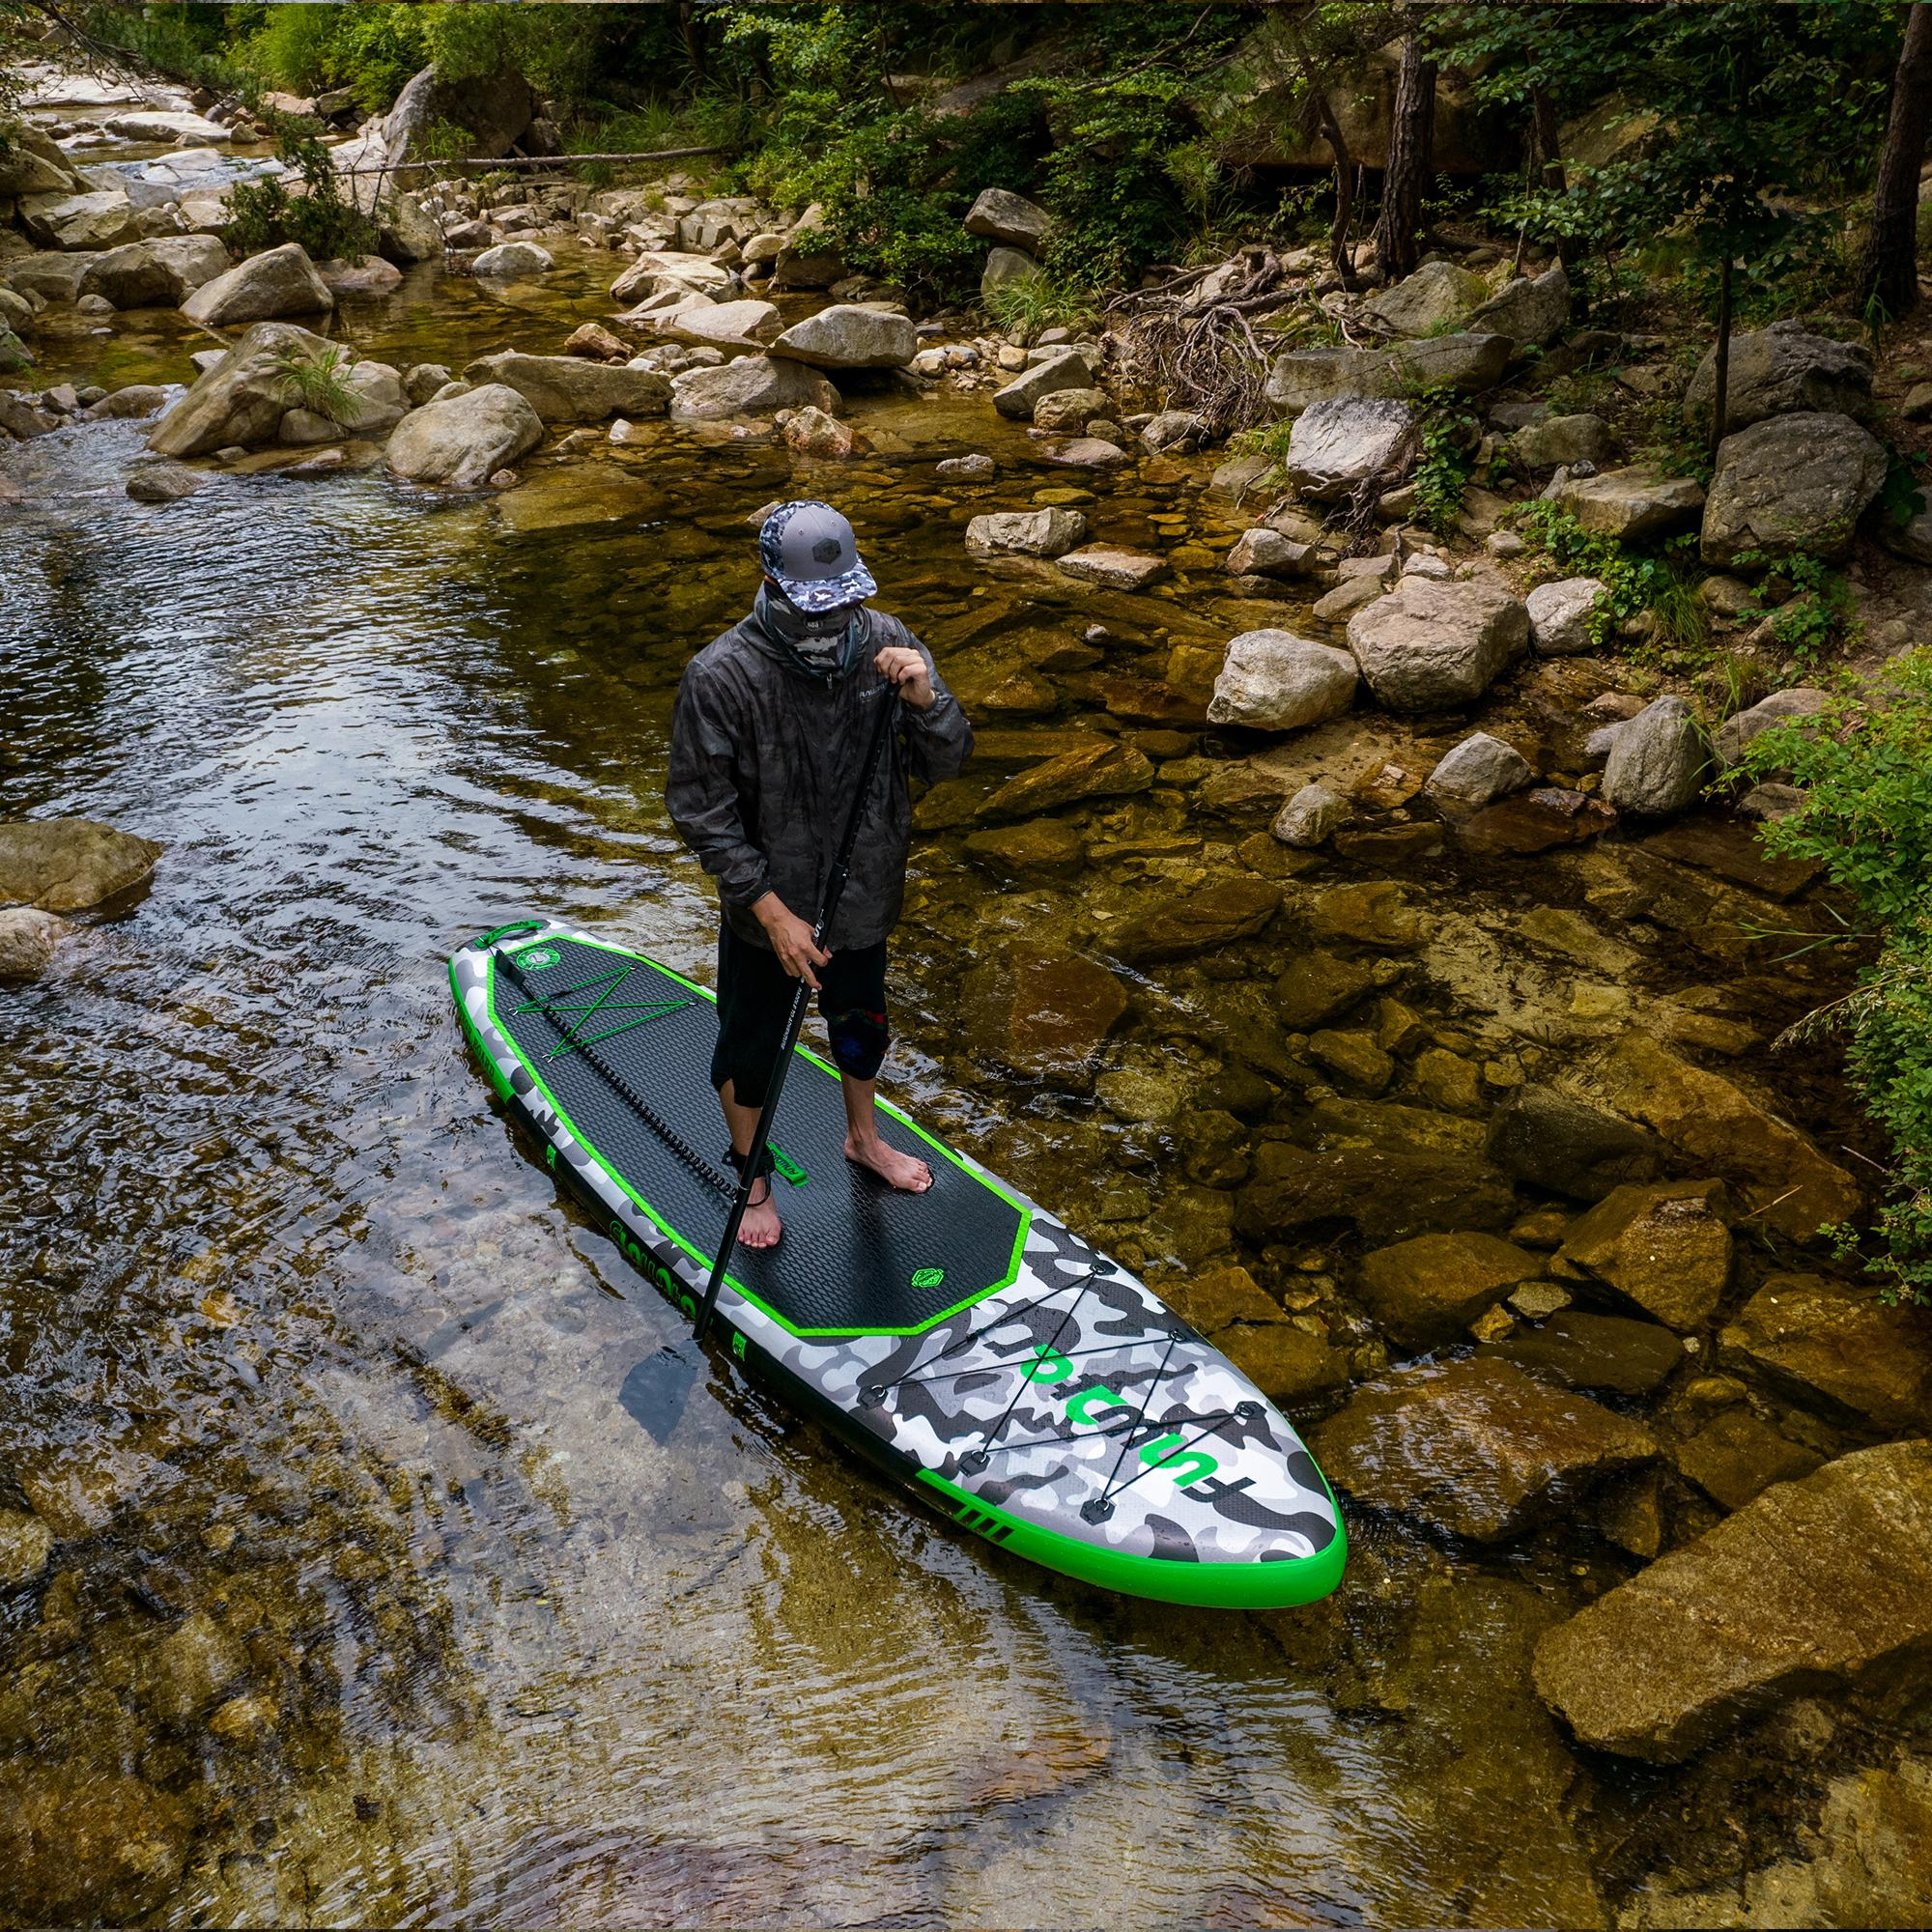 dotshio_green_honor_paddle_sizes_sup_surf_board_inflatable_cheap_with_all_accessories_construction_sizes_measures_model_men_river